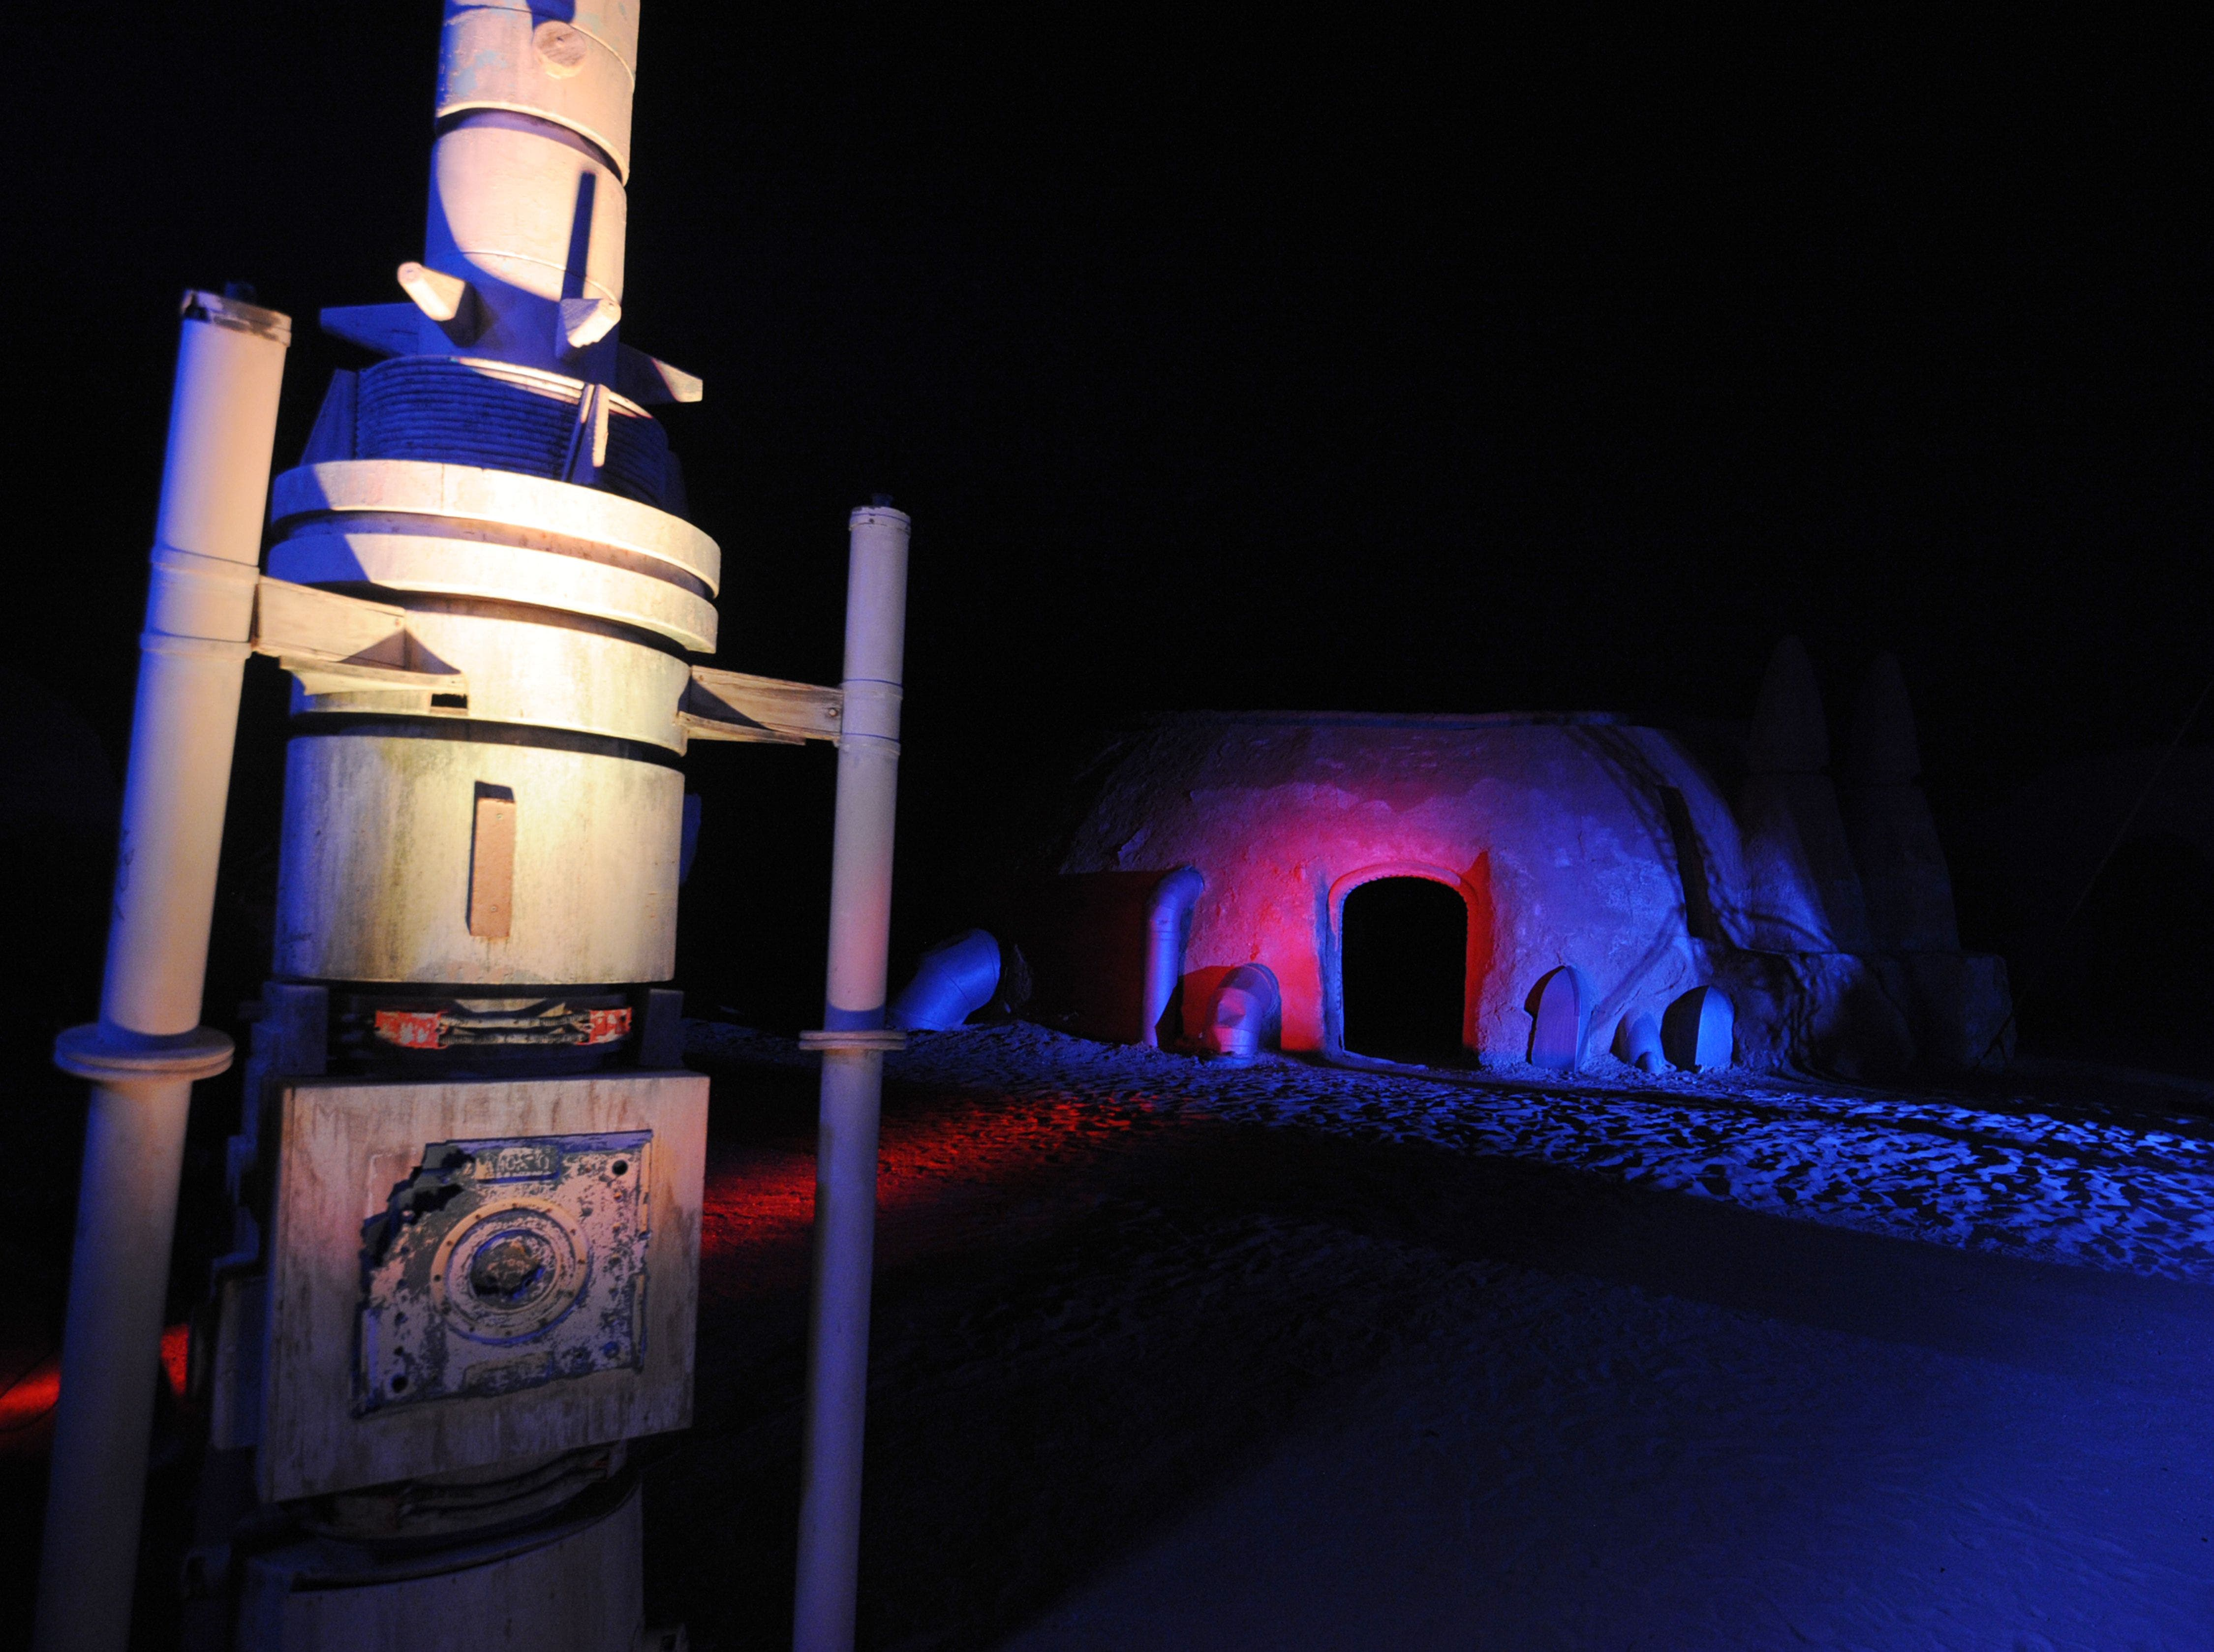 Star Wars comes to life in Tunisia